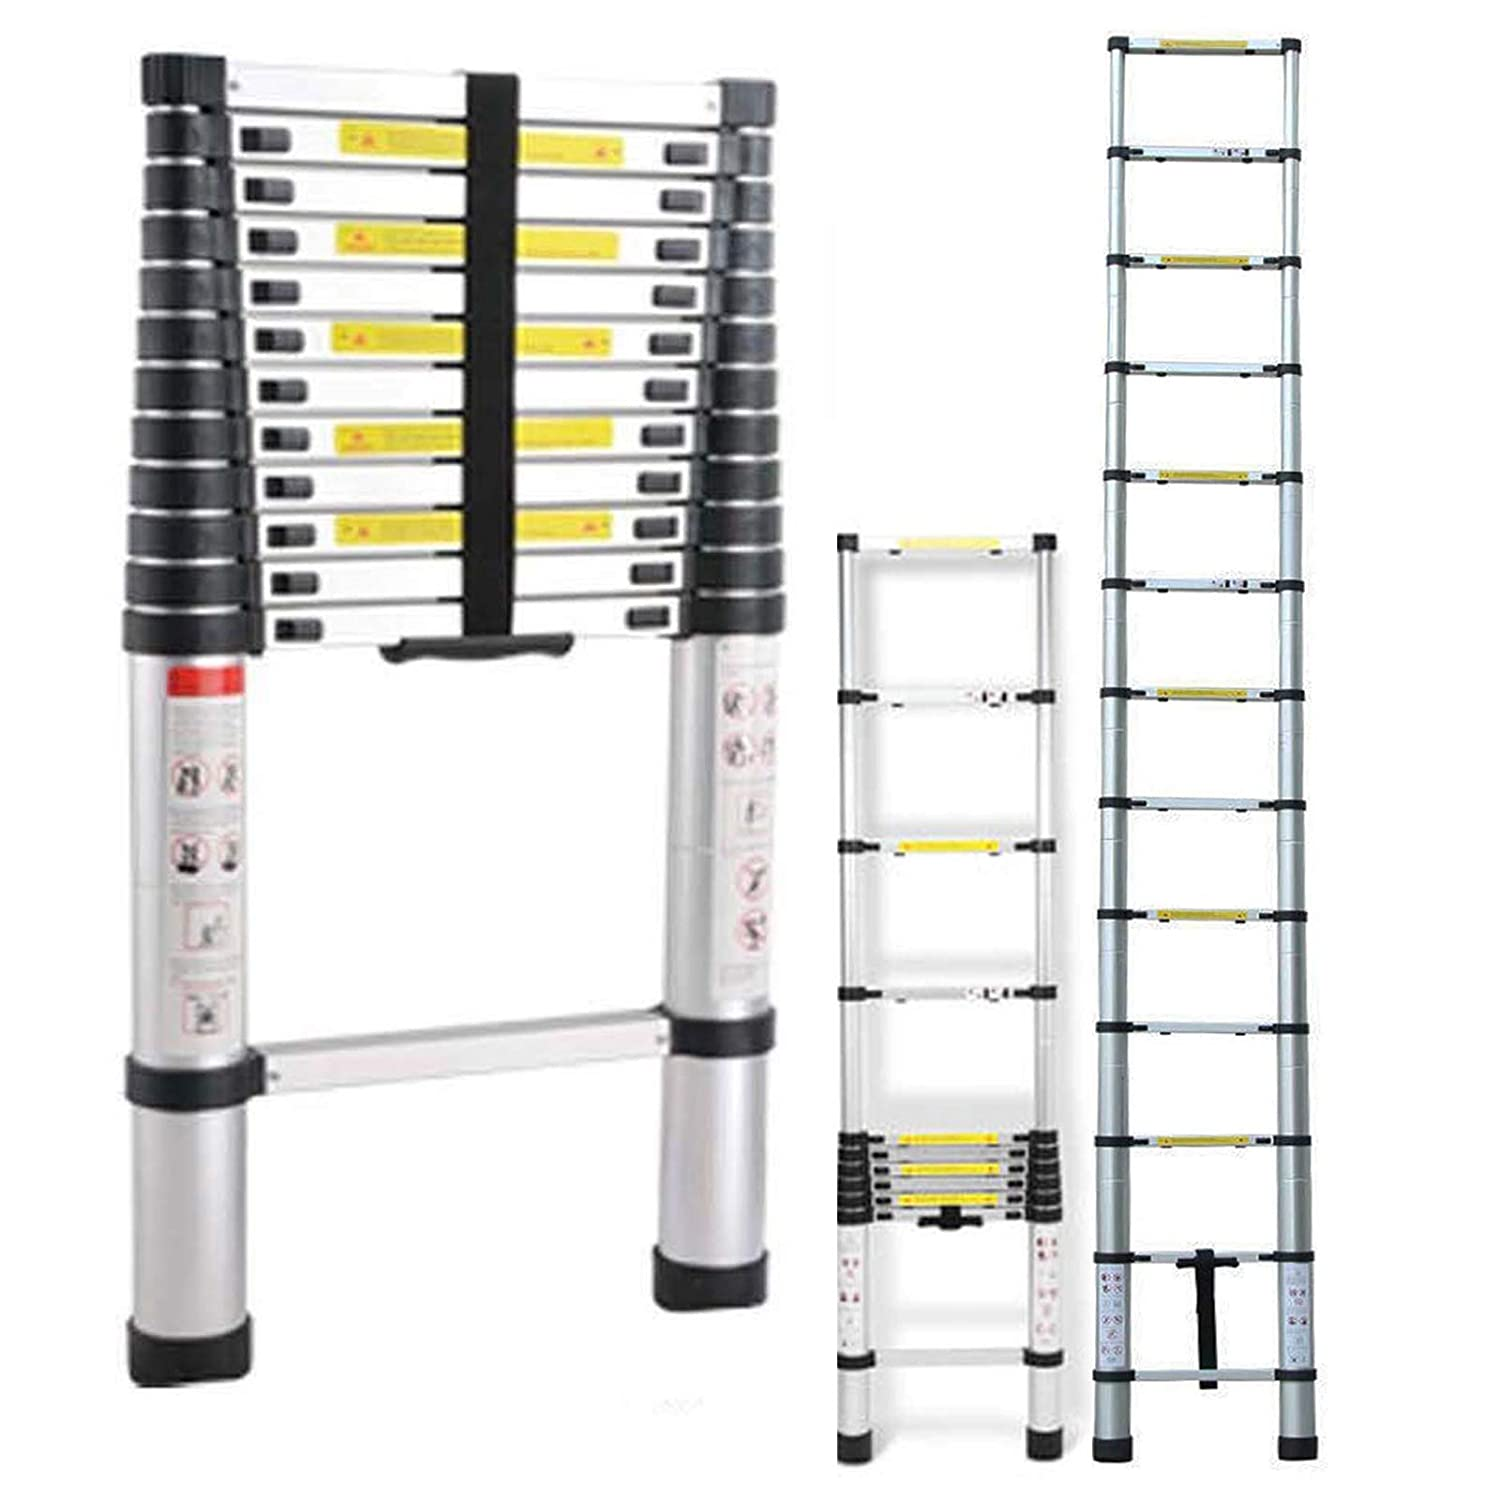 Aluminum Collapsible Ladder Extension 12.5ft Telescoping Climb Adjustable Folding Tools 13Steps Max.330lbs, for Household Home Warehouse Indoor Multi-Function DICN Factory